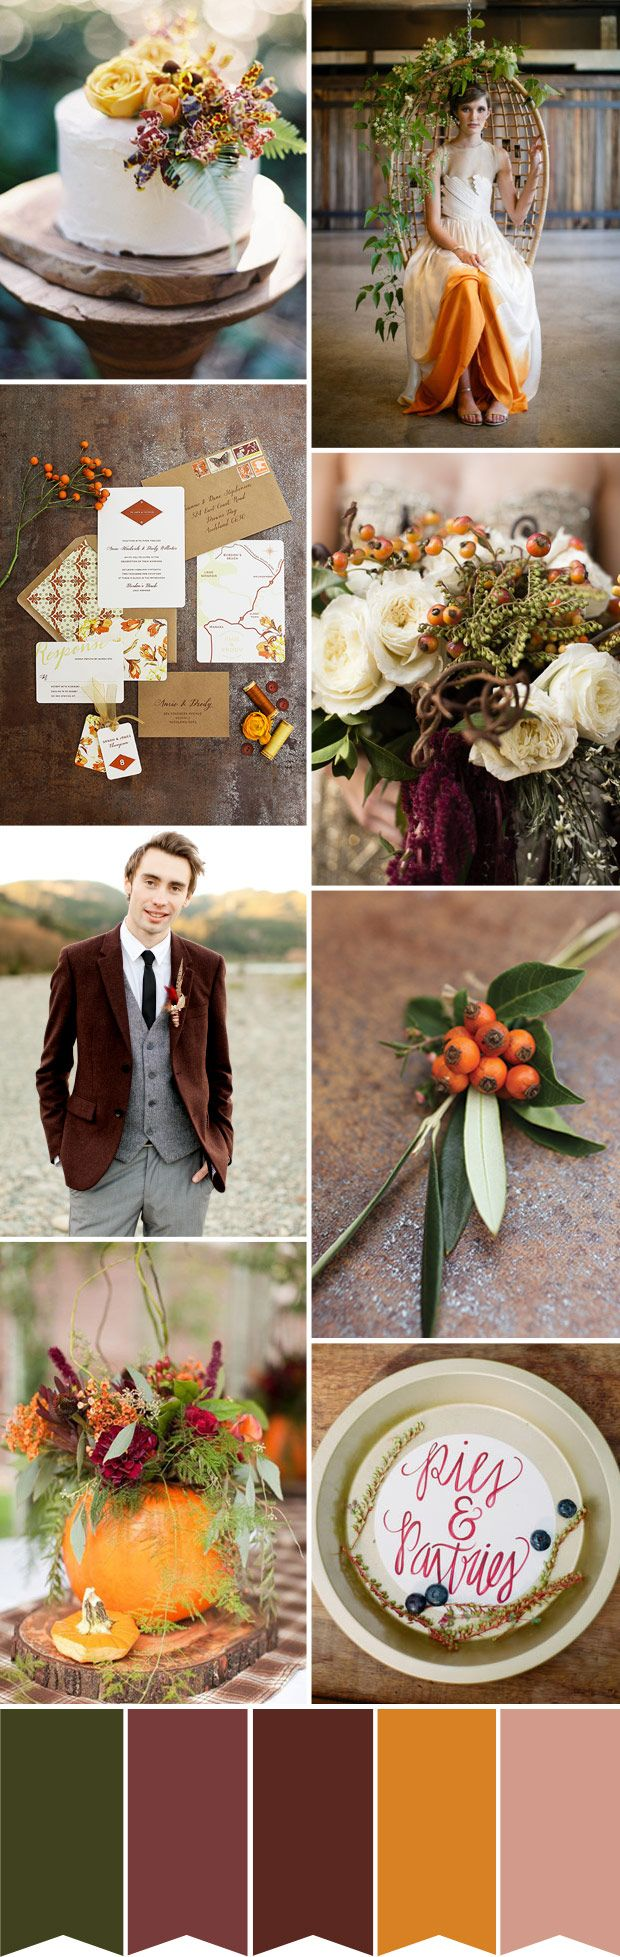 autumn wedding inspiration - Read more on One Fab Day: http://onefabday.com/autumn-wedding-colour-palette/